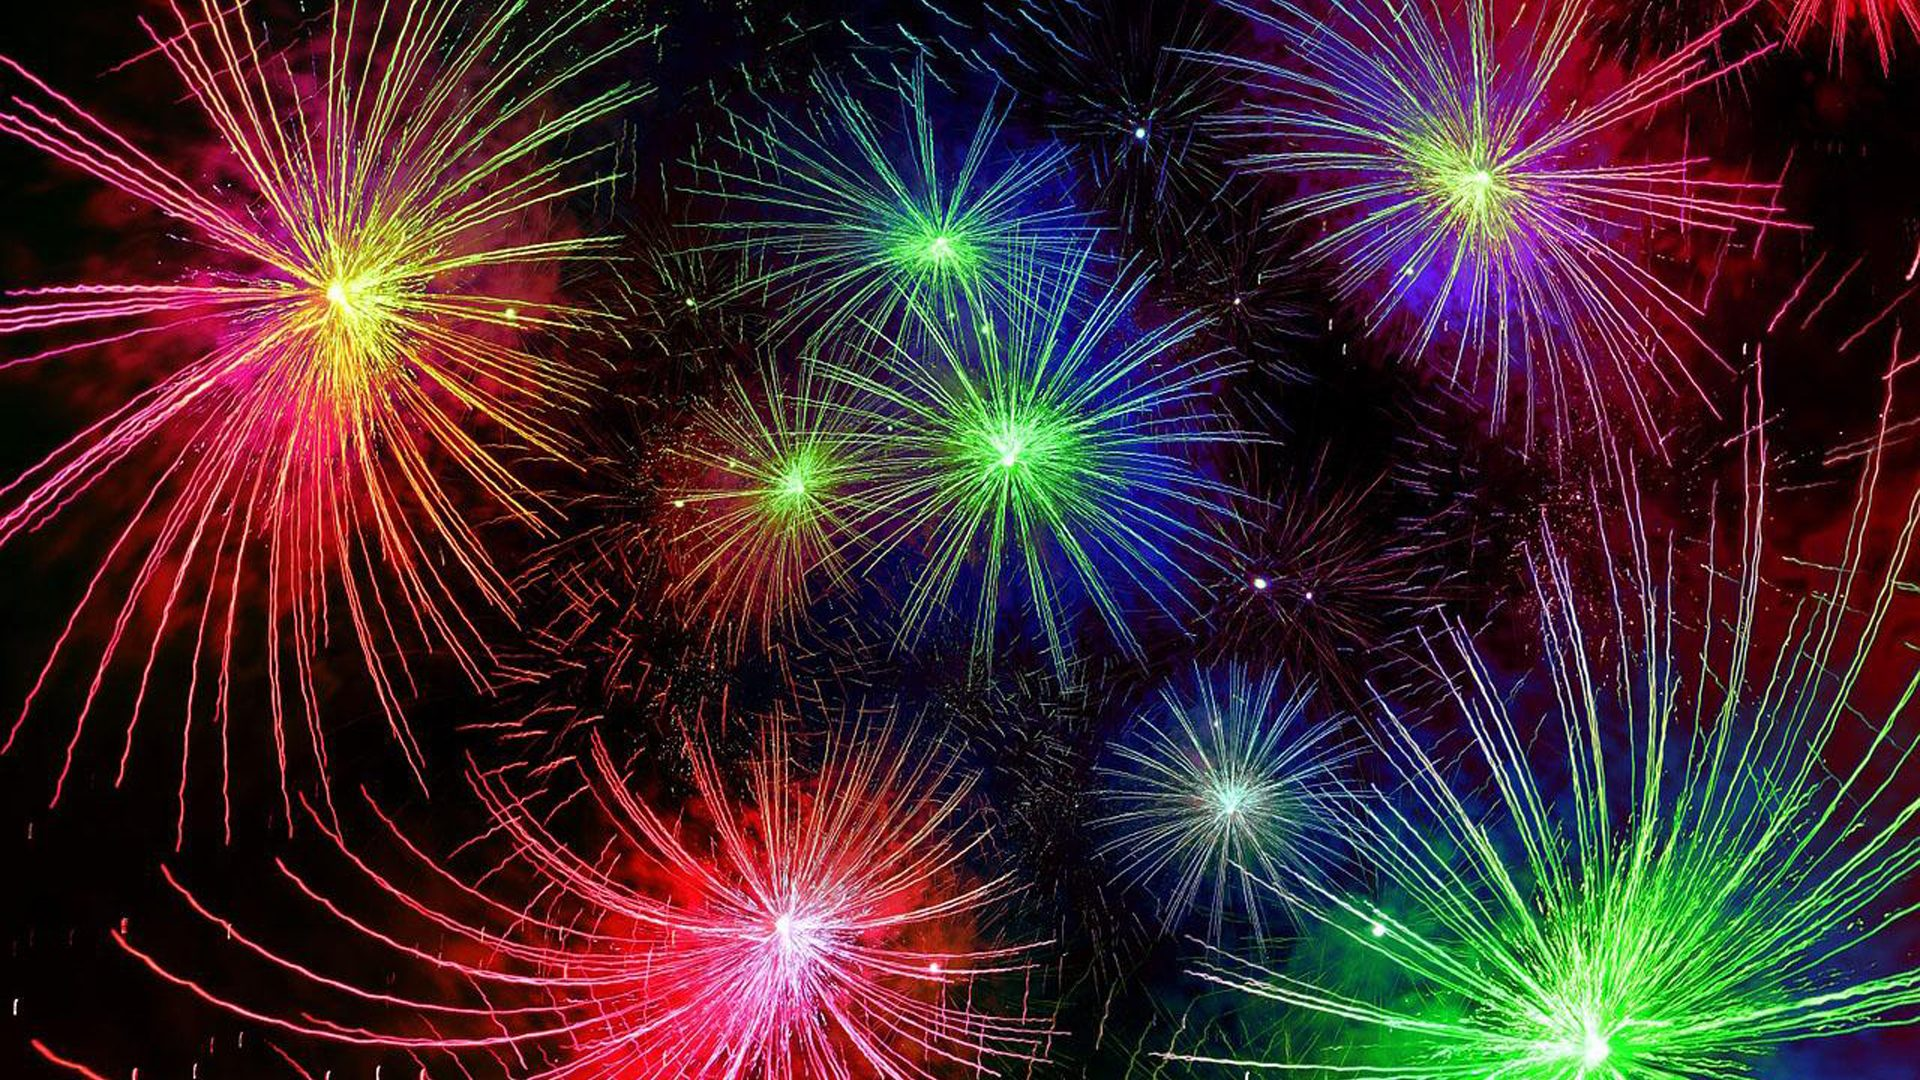 Happy-New-Year-Live-New-Years-fireworks-red-blue-yellow-and-green-color-HD-Wallpaper-1920x1200-1920x1080.jpg